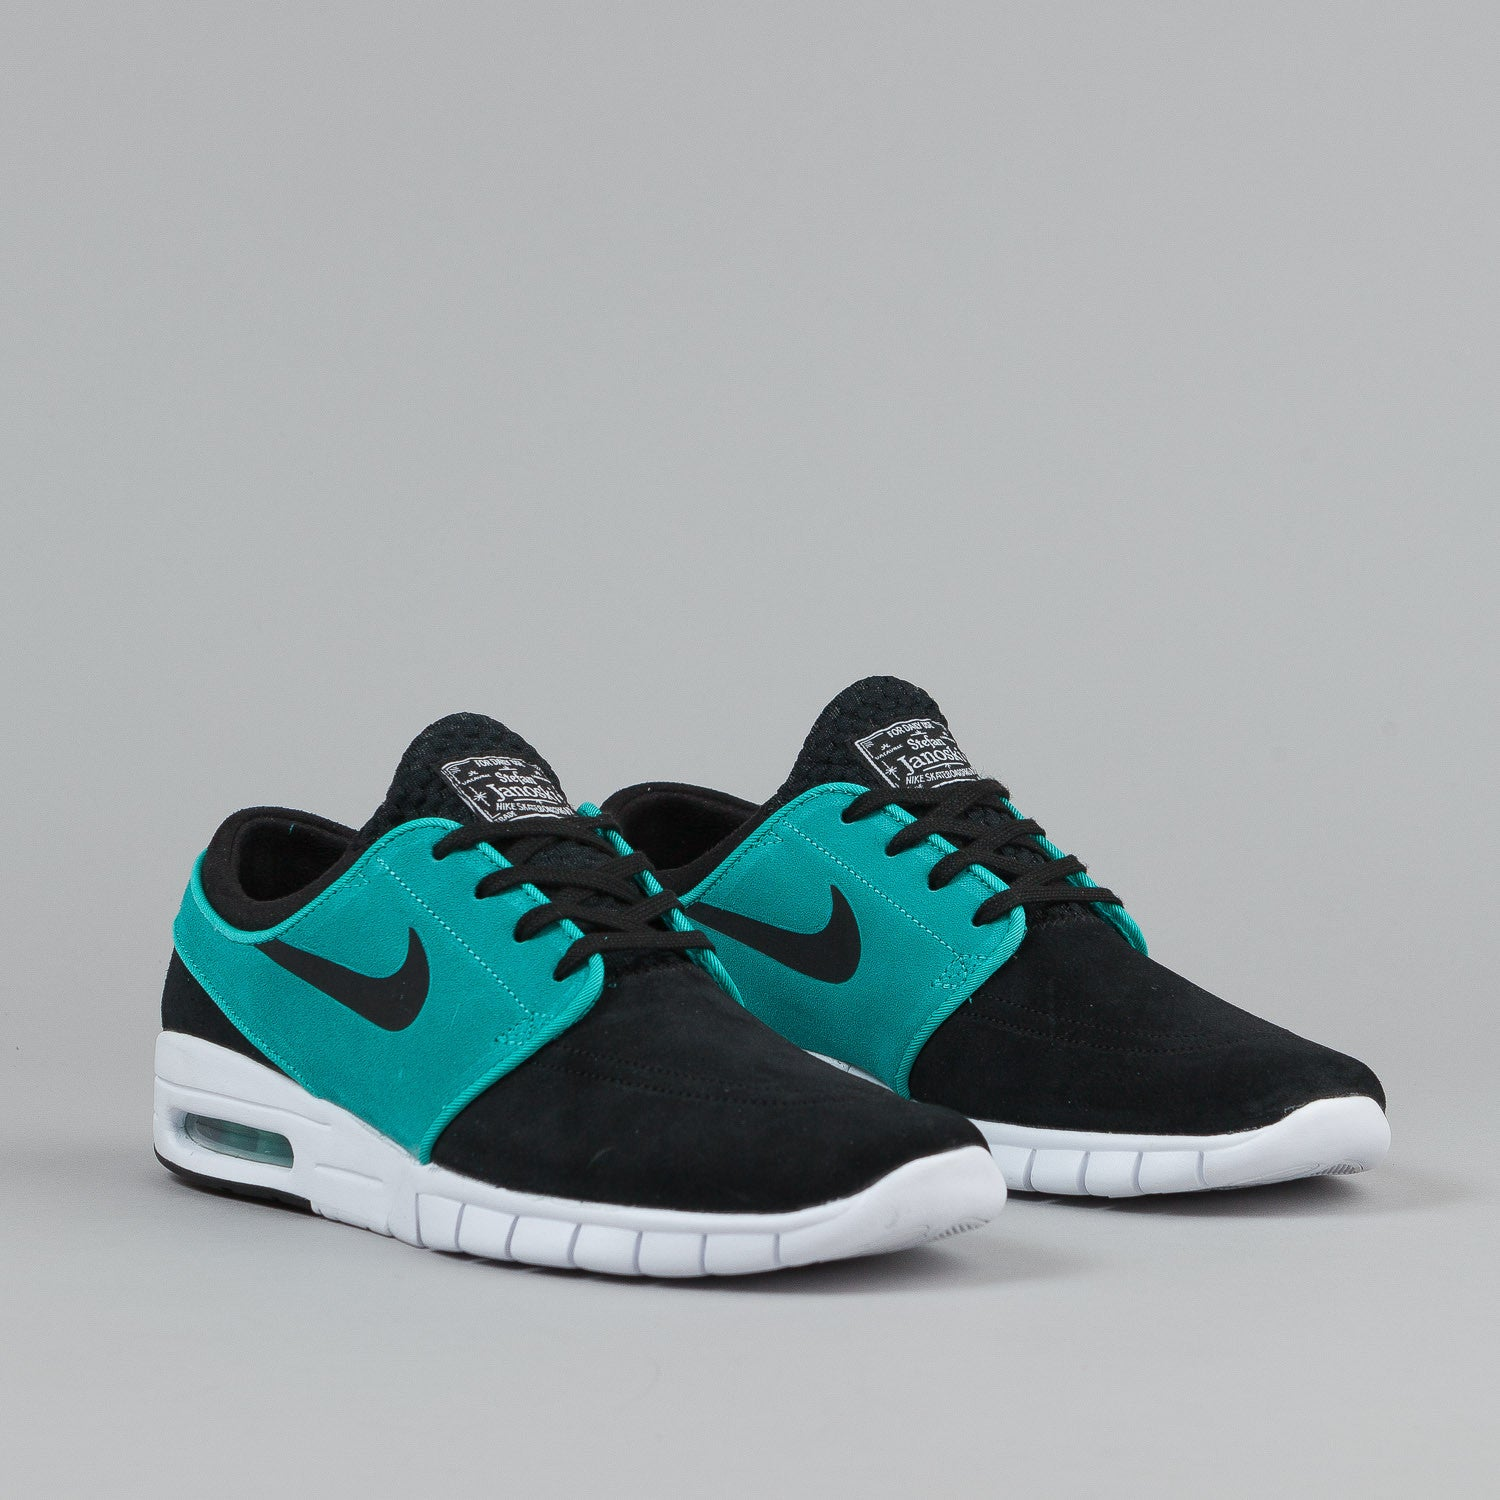 nike sb stefan janoski max suede shoes black lt retro. Black Bedroom Furniture Sets. Home Design Ideas